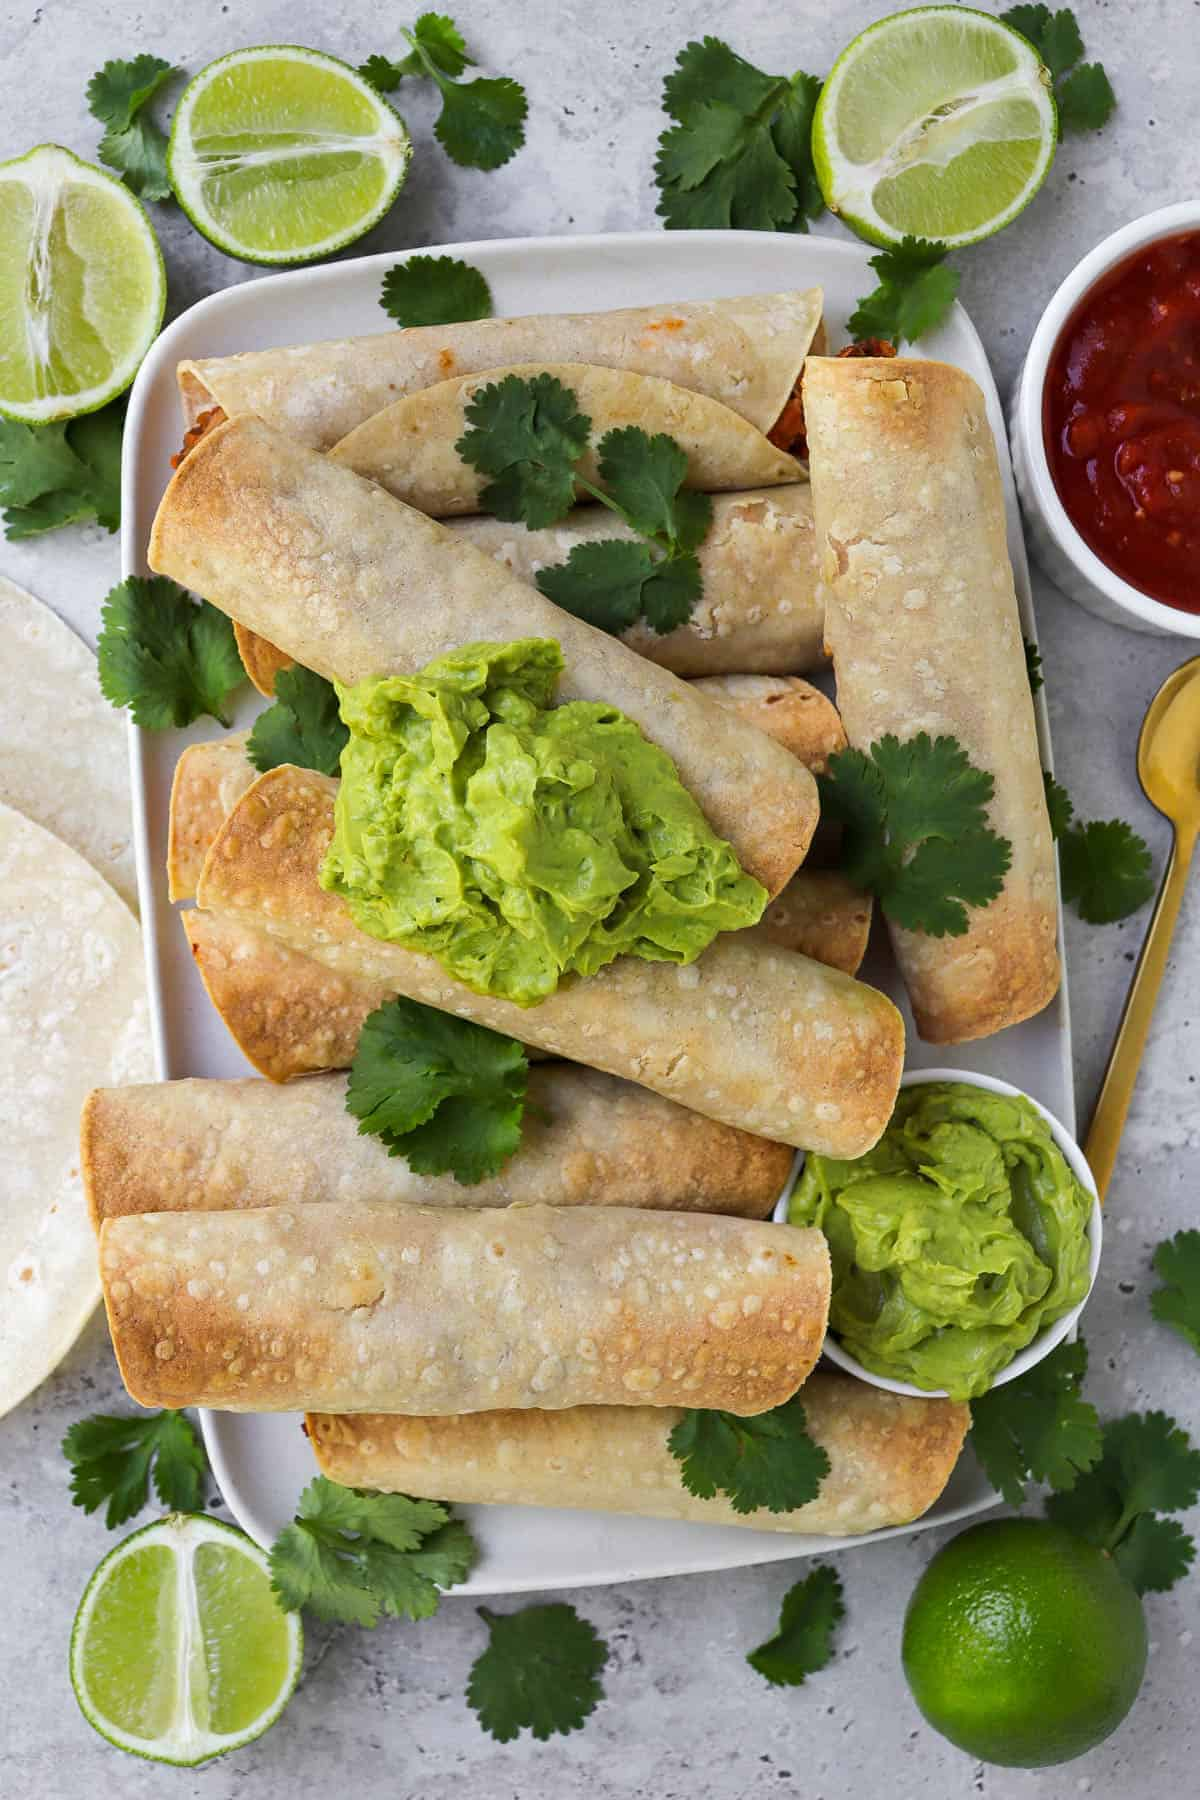 Taquitos on platter topped with coriander leaves and guacamole. Fresh cut up limes, tortillas, salsa and gold spoon on the sides.